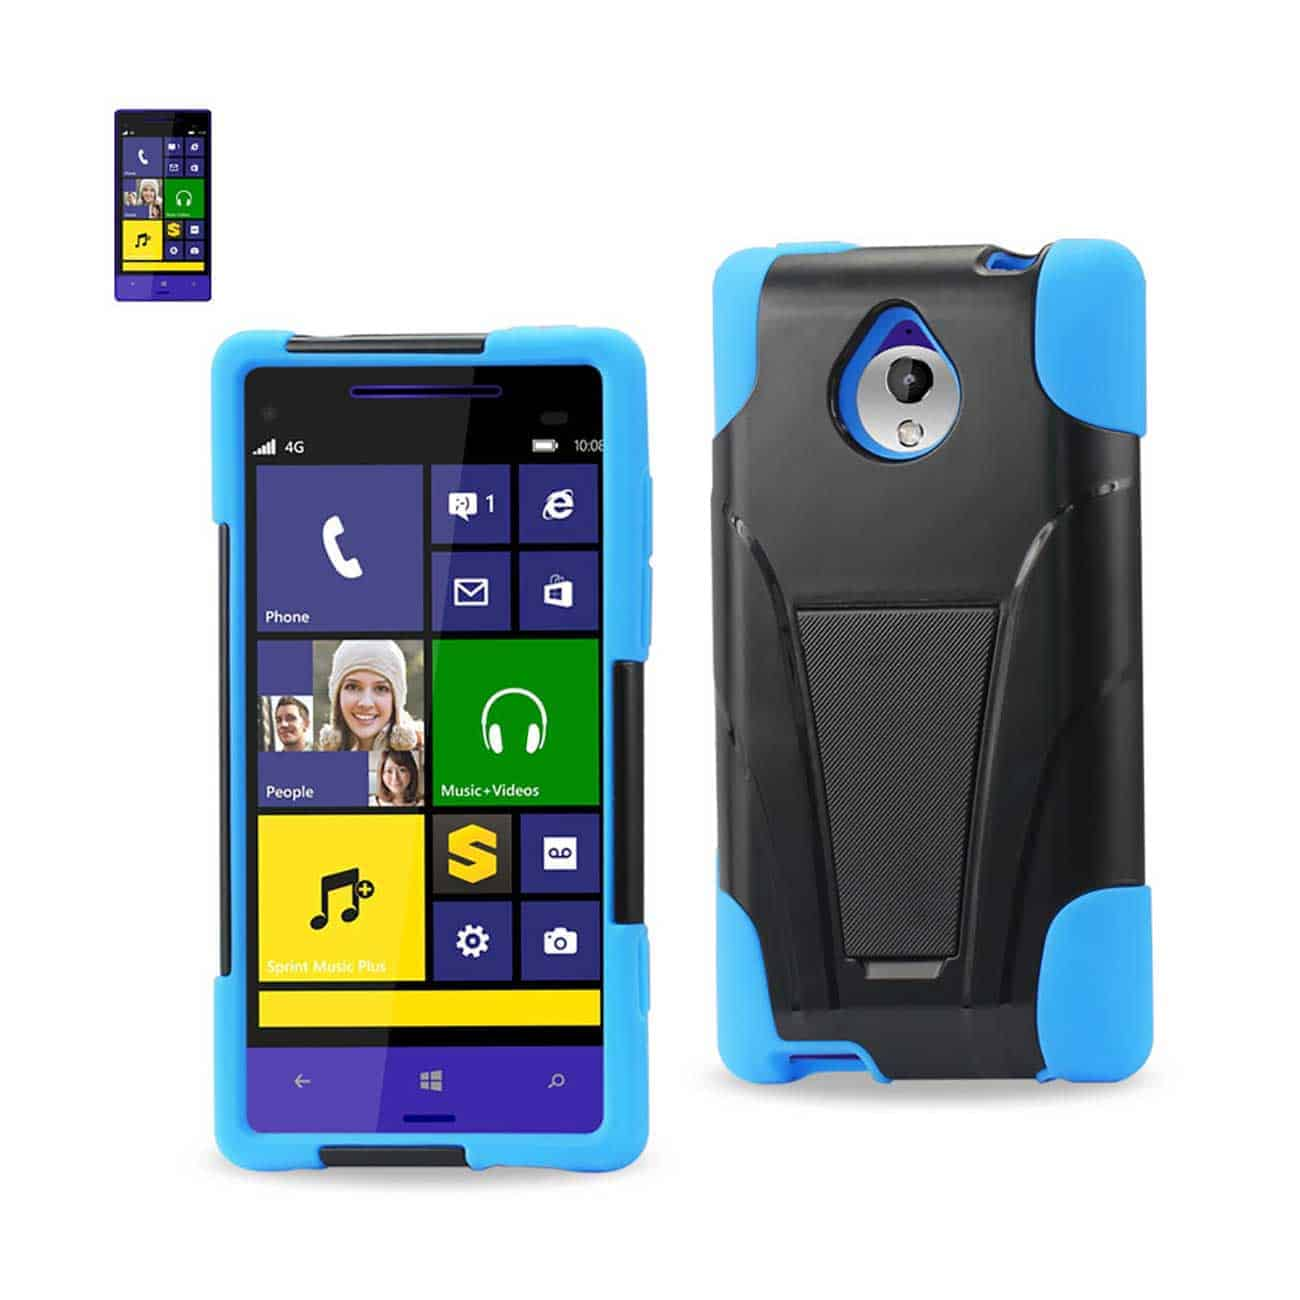 HTC 8XT HYBRID HEAVY DUTY CASE WITH KICKSTAND IN NAVY BLACK